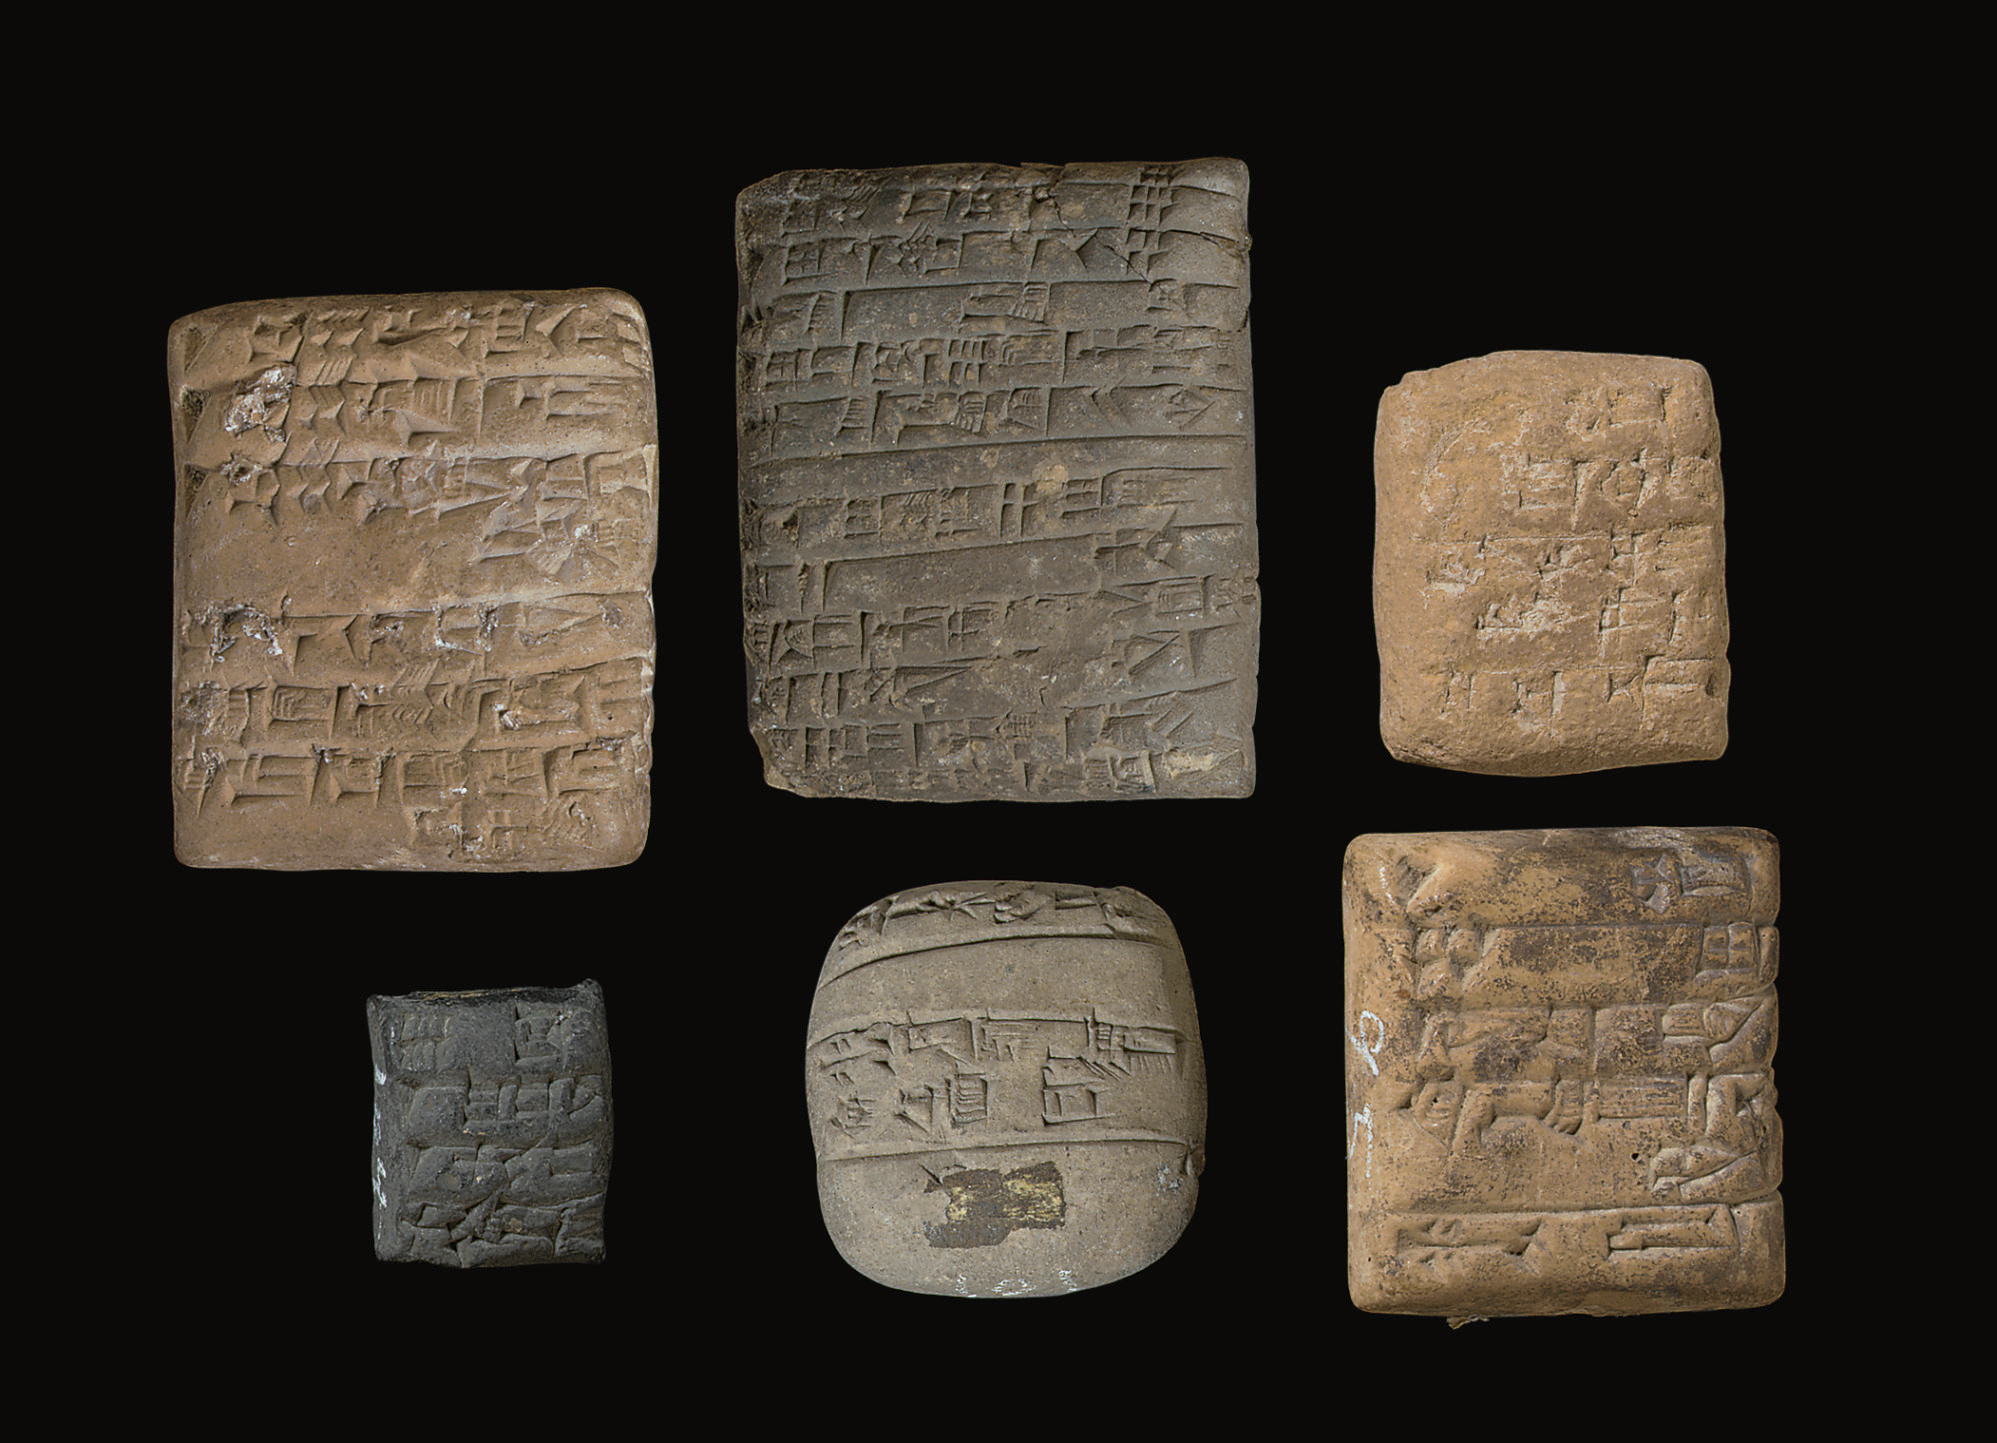 SIX MESOPOTAMIAN CUNEIFORM TAB